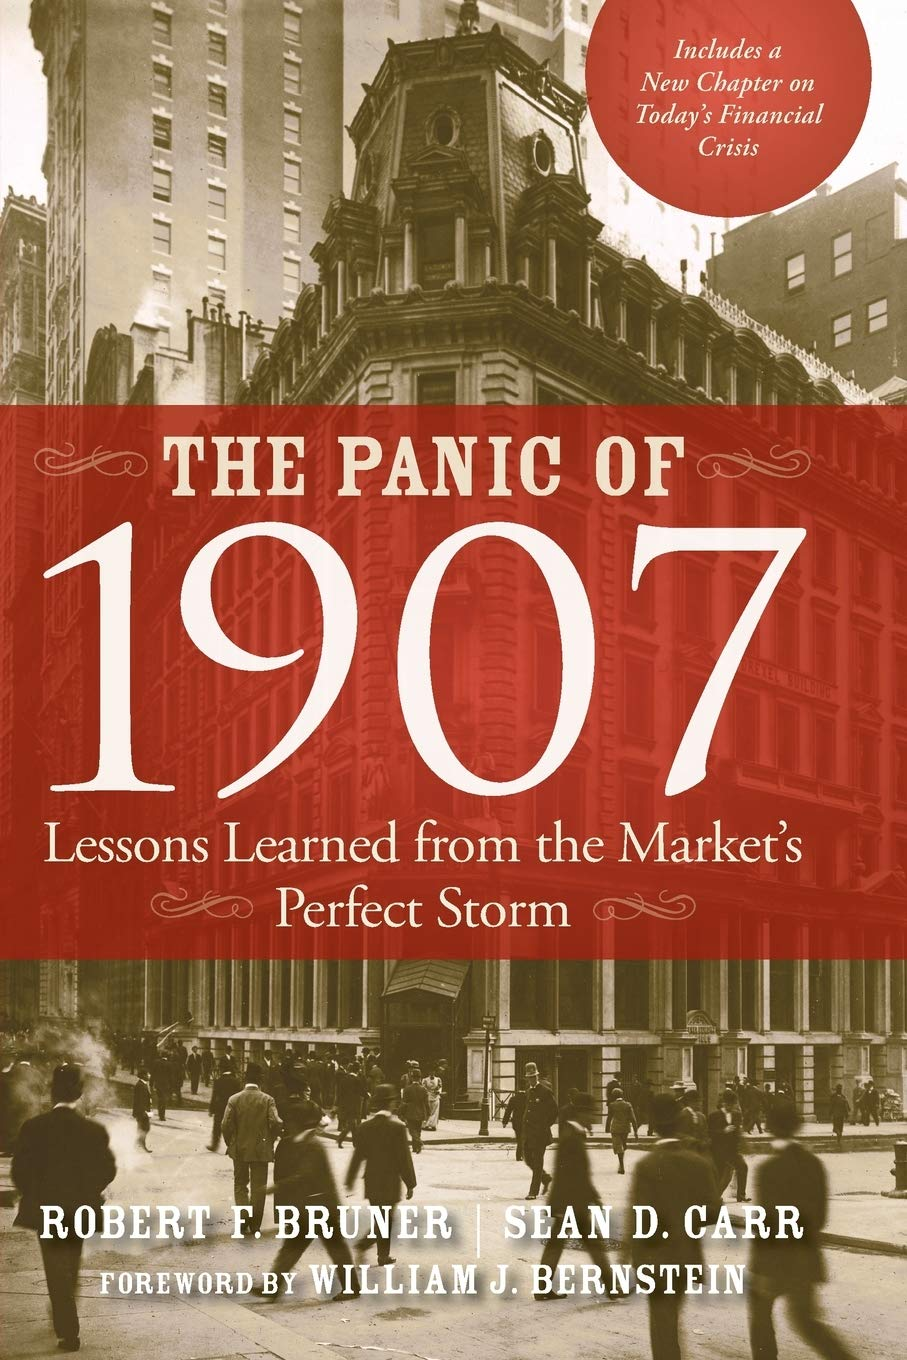 Panic of 1907 P: Lessons Learned from the Markets Perfect Storm: Amazon.es: Bruner: Libros en idiomas extranjeros